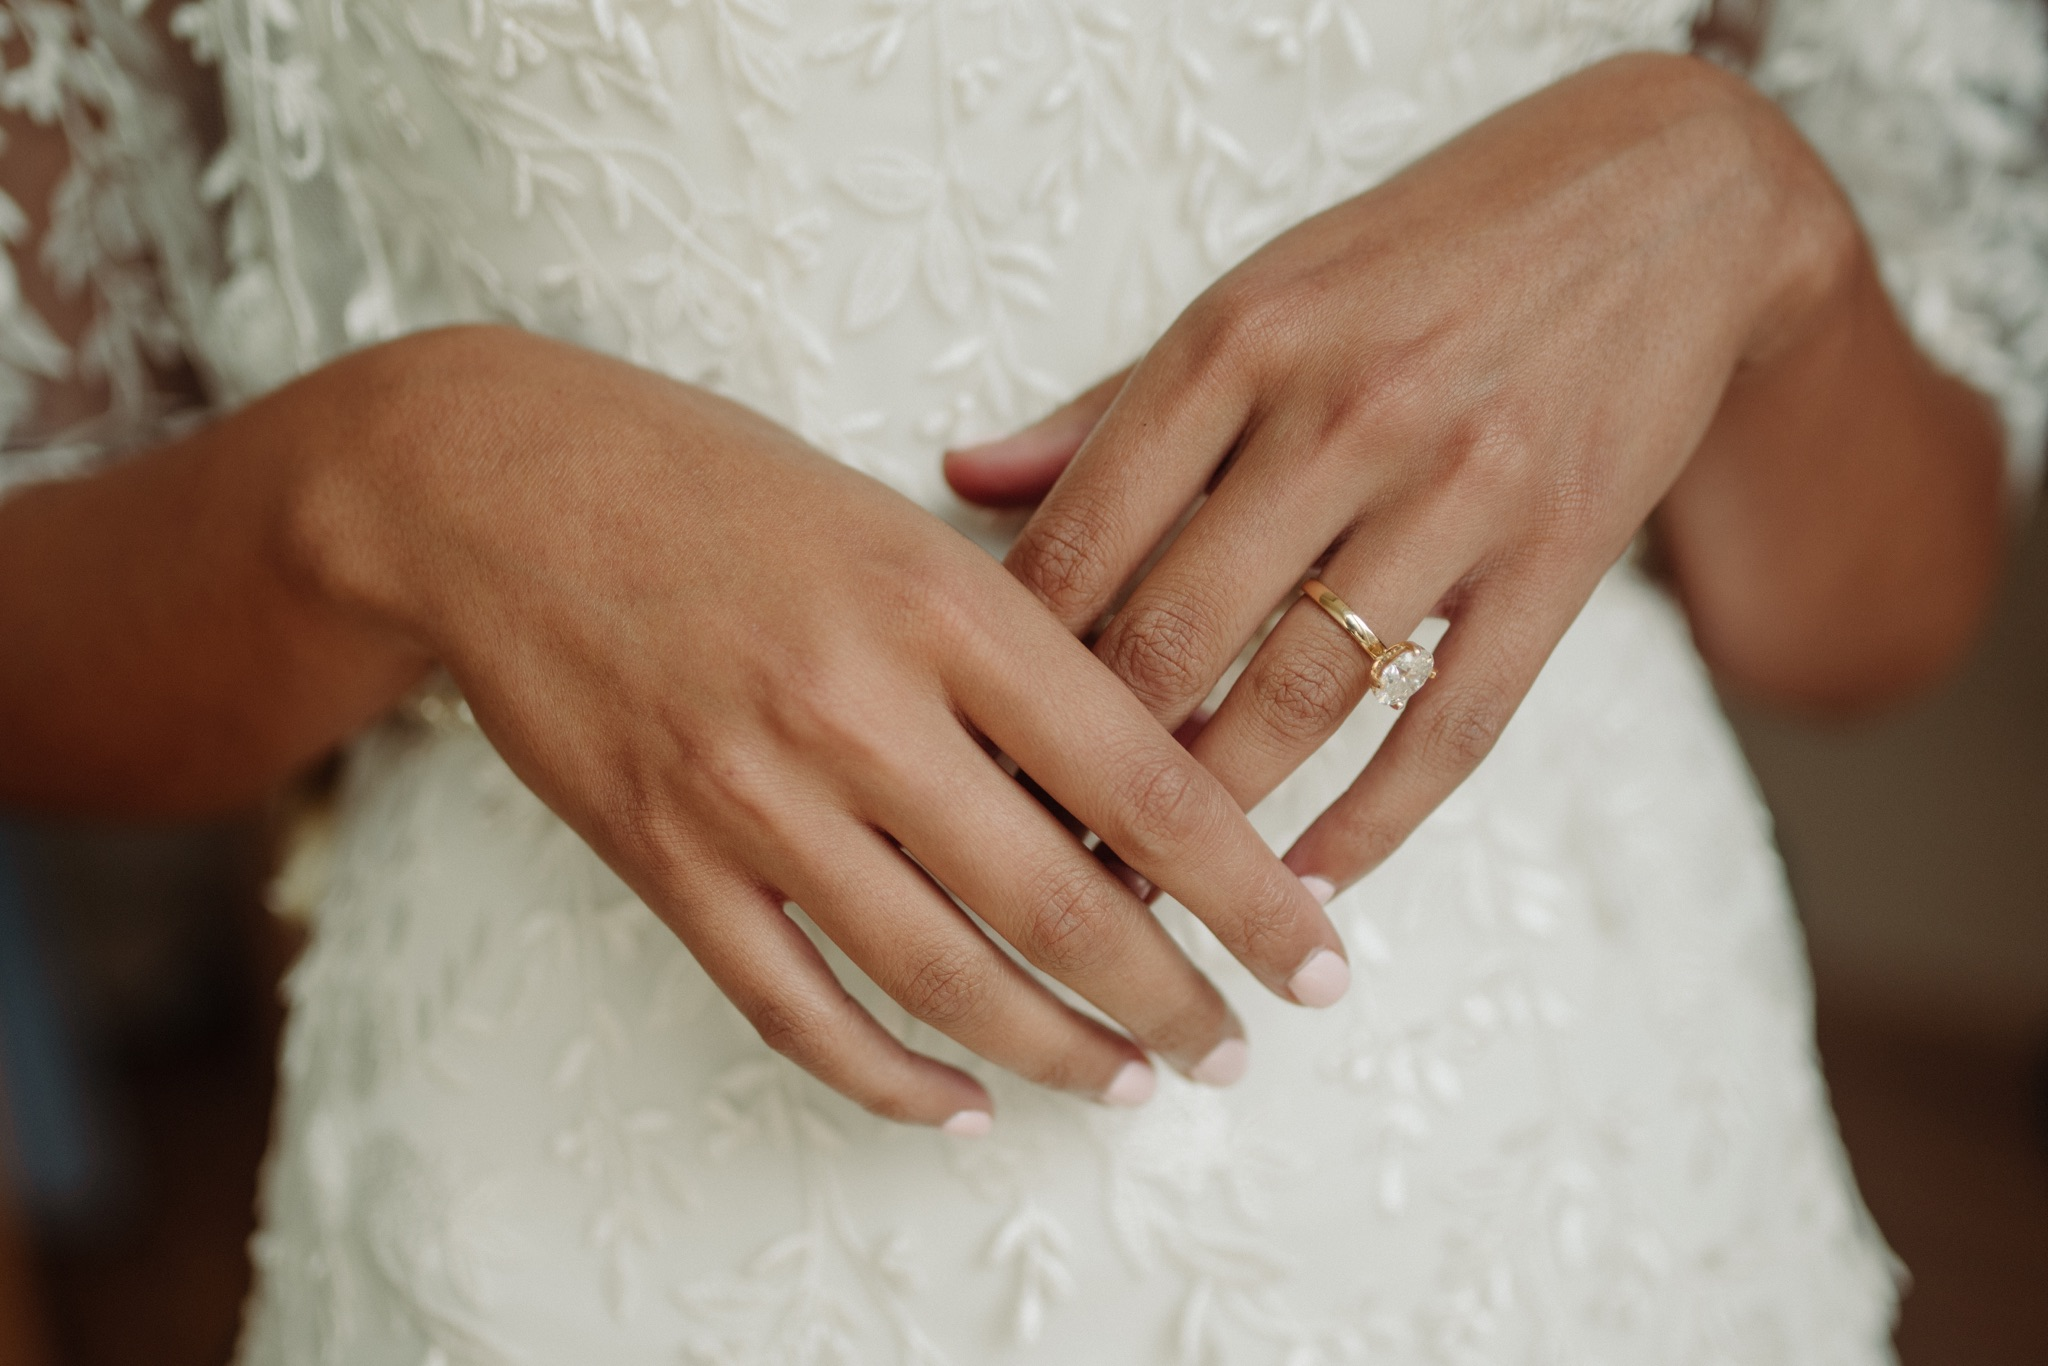 hands crossed with engagement ring on left hand